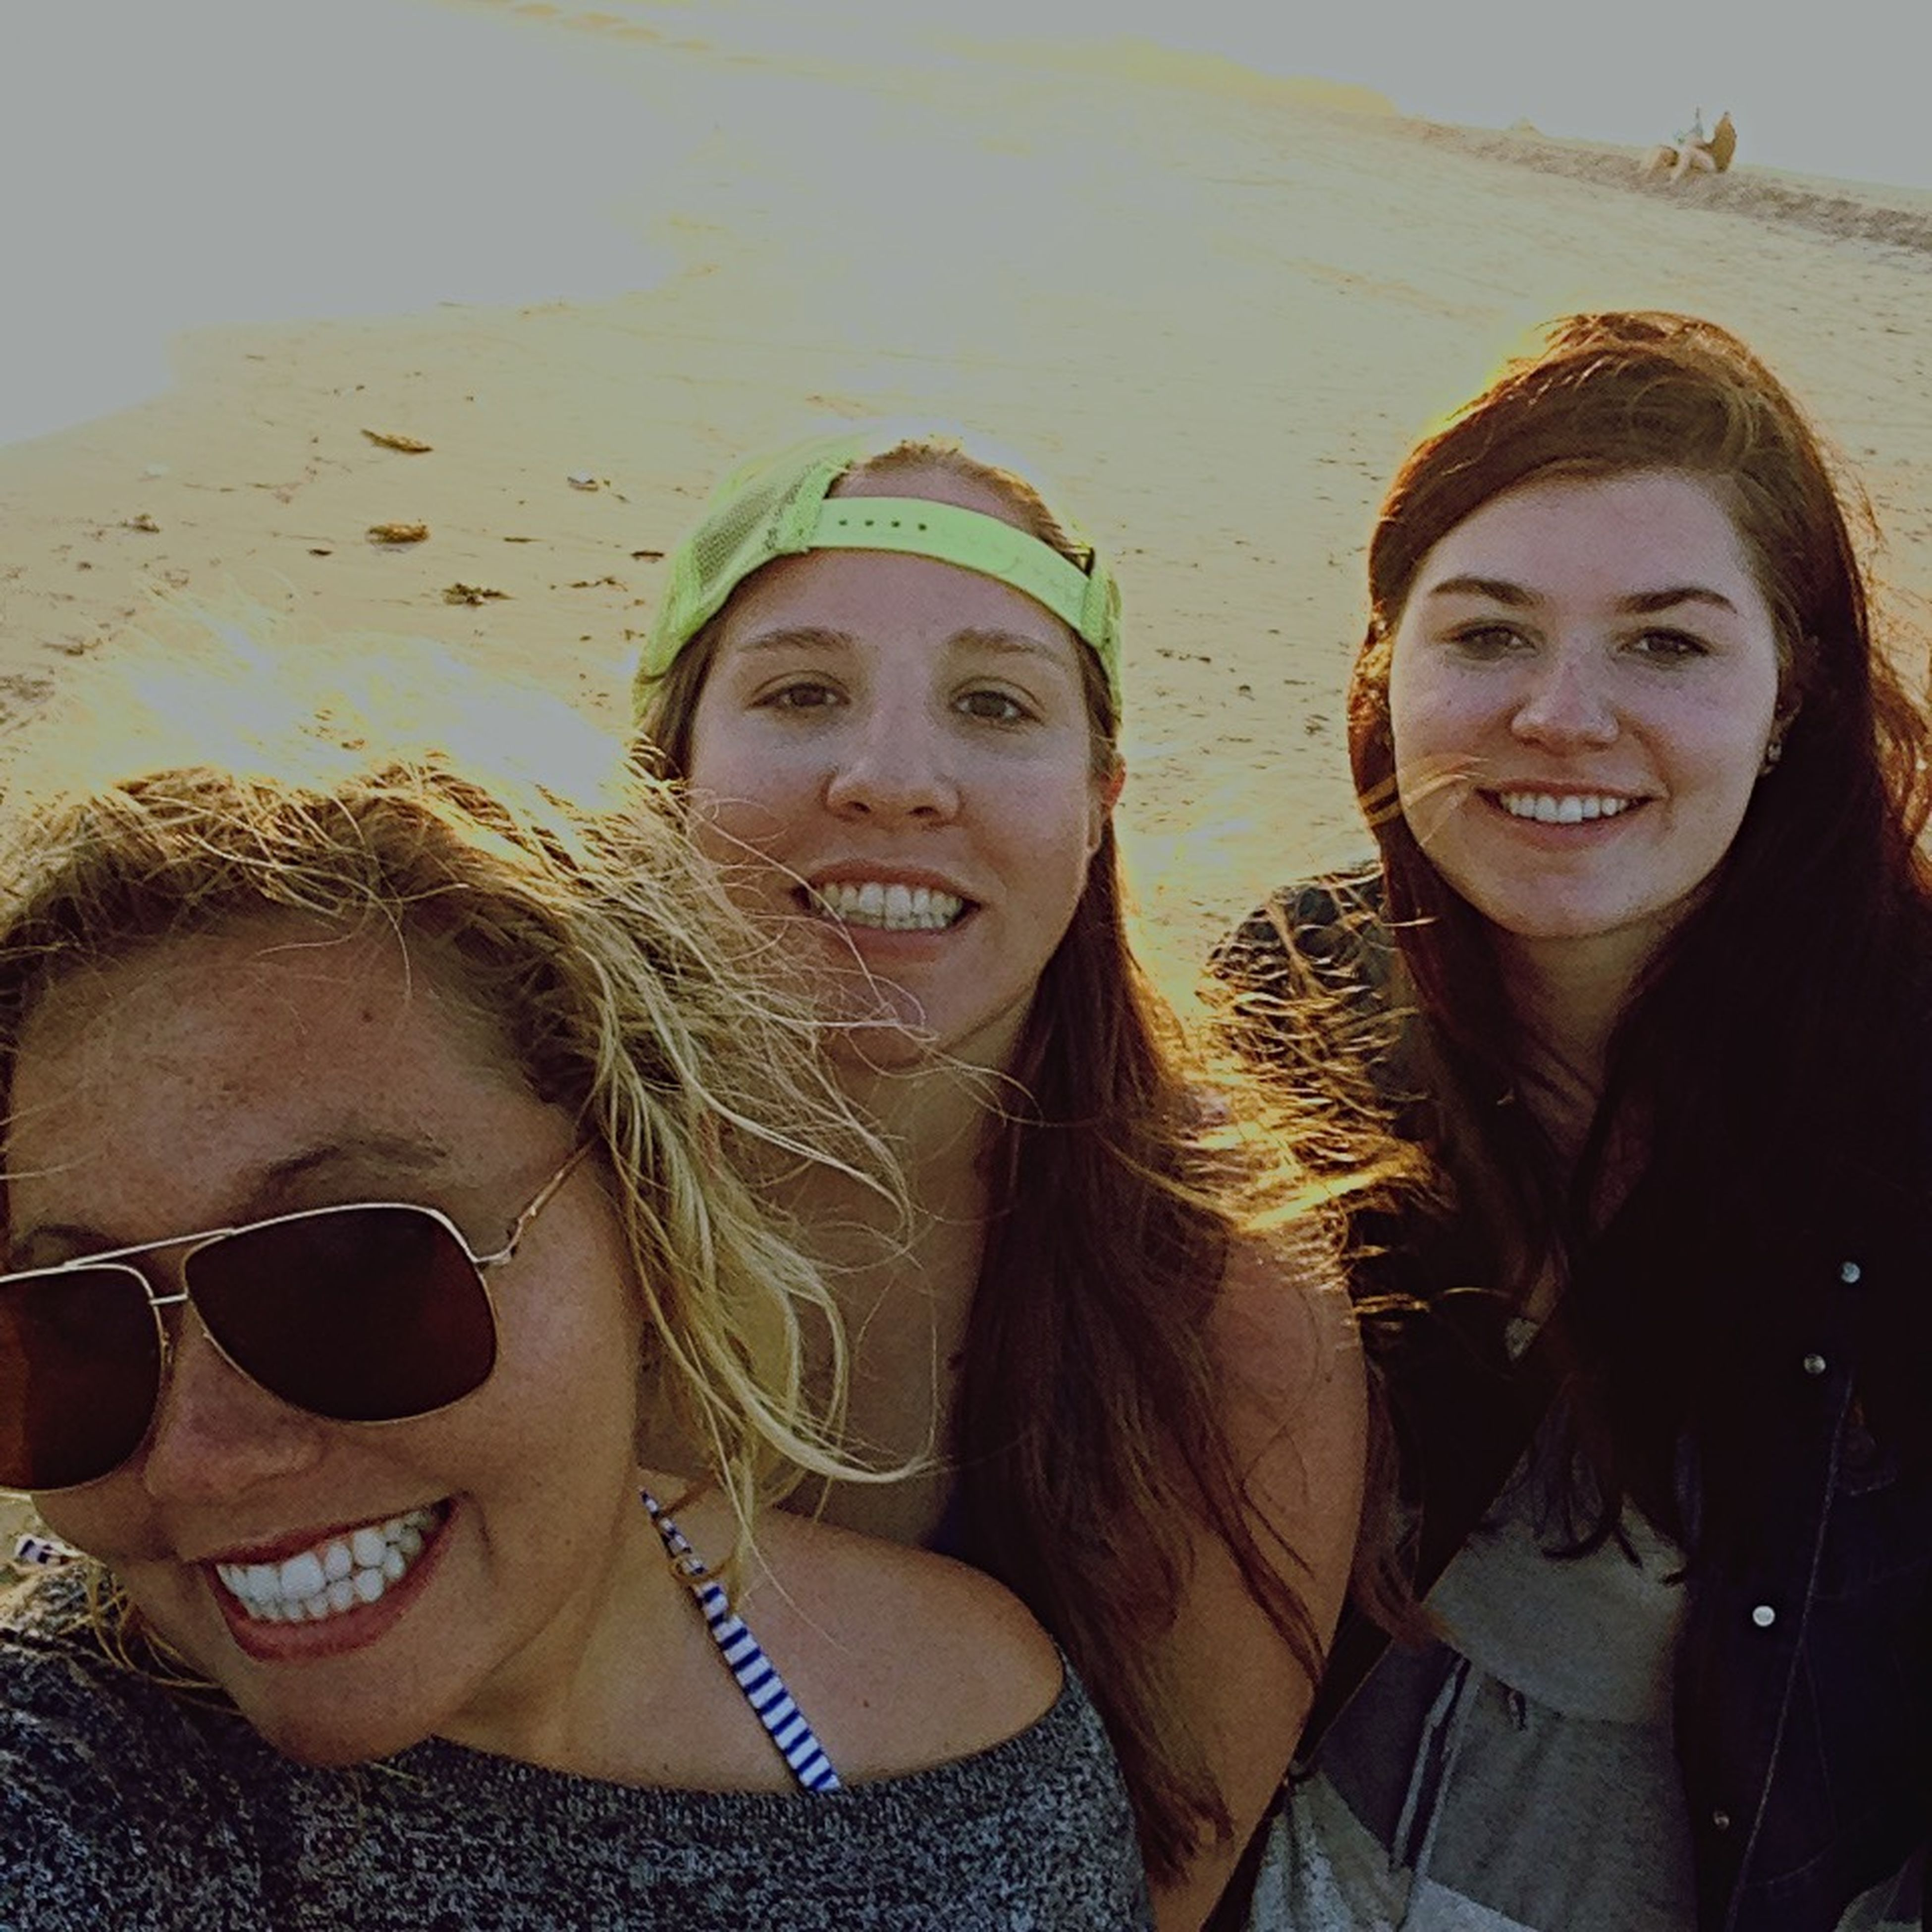 looking at camera, portrait, person, lifestyles, young adult, leisure activity, smiling, young women, front view, happiness, sunglasses, togetherness, headshot, bonding, toothy smile, casual clothing